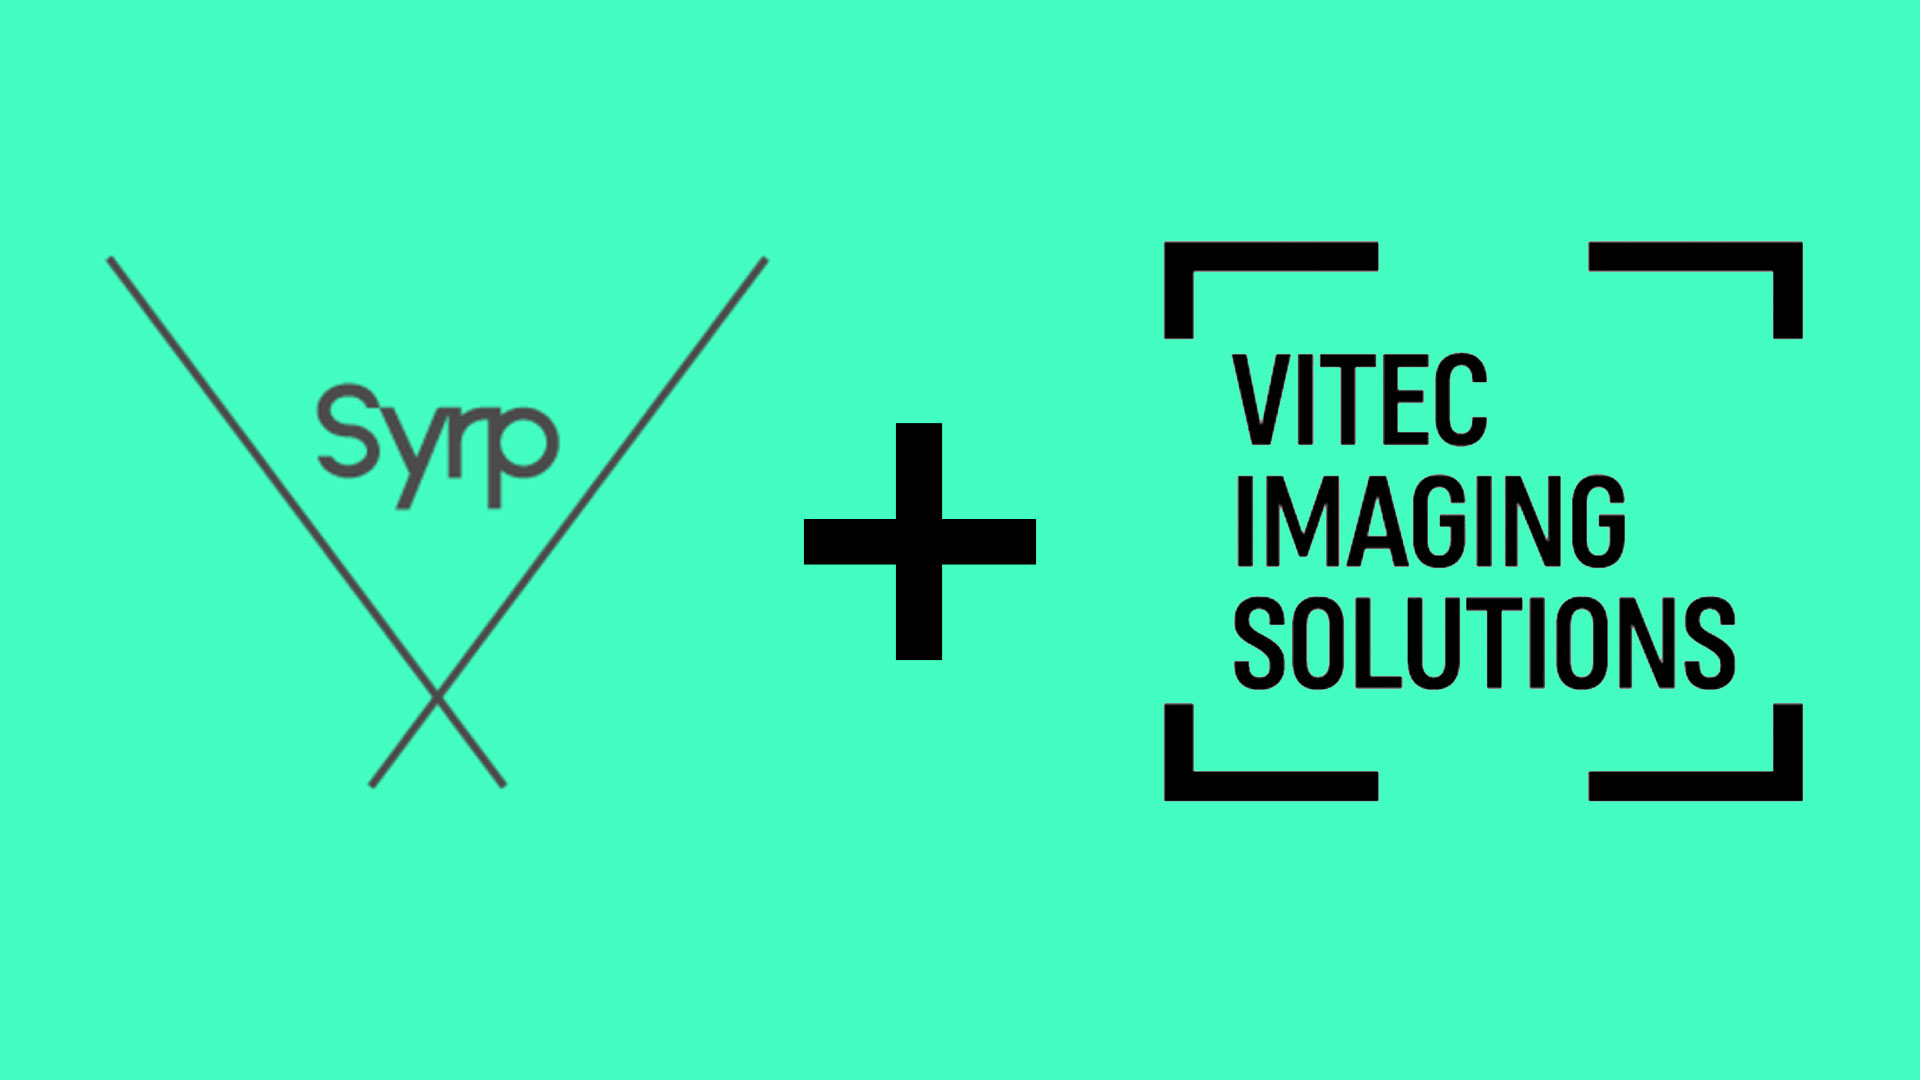 Syrp adquirida por Vitec Imaging Solutions